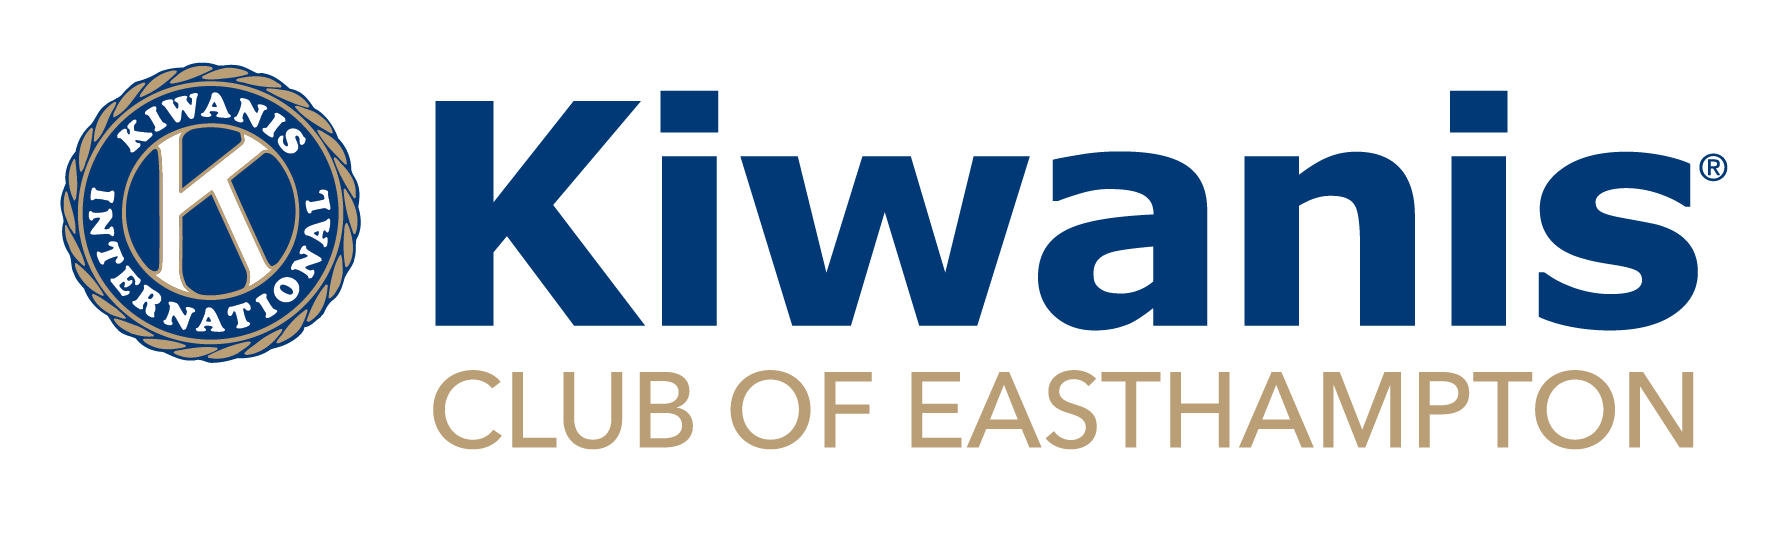 Kiwanis Club of Easthampton